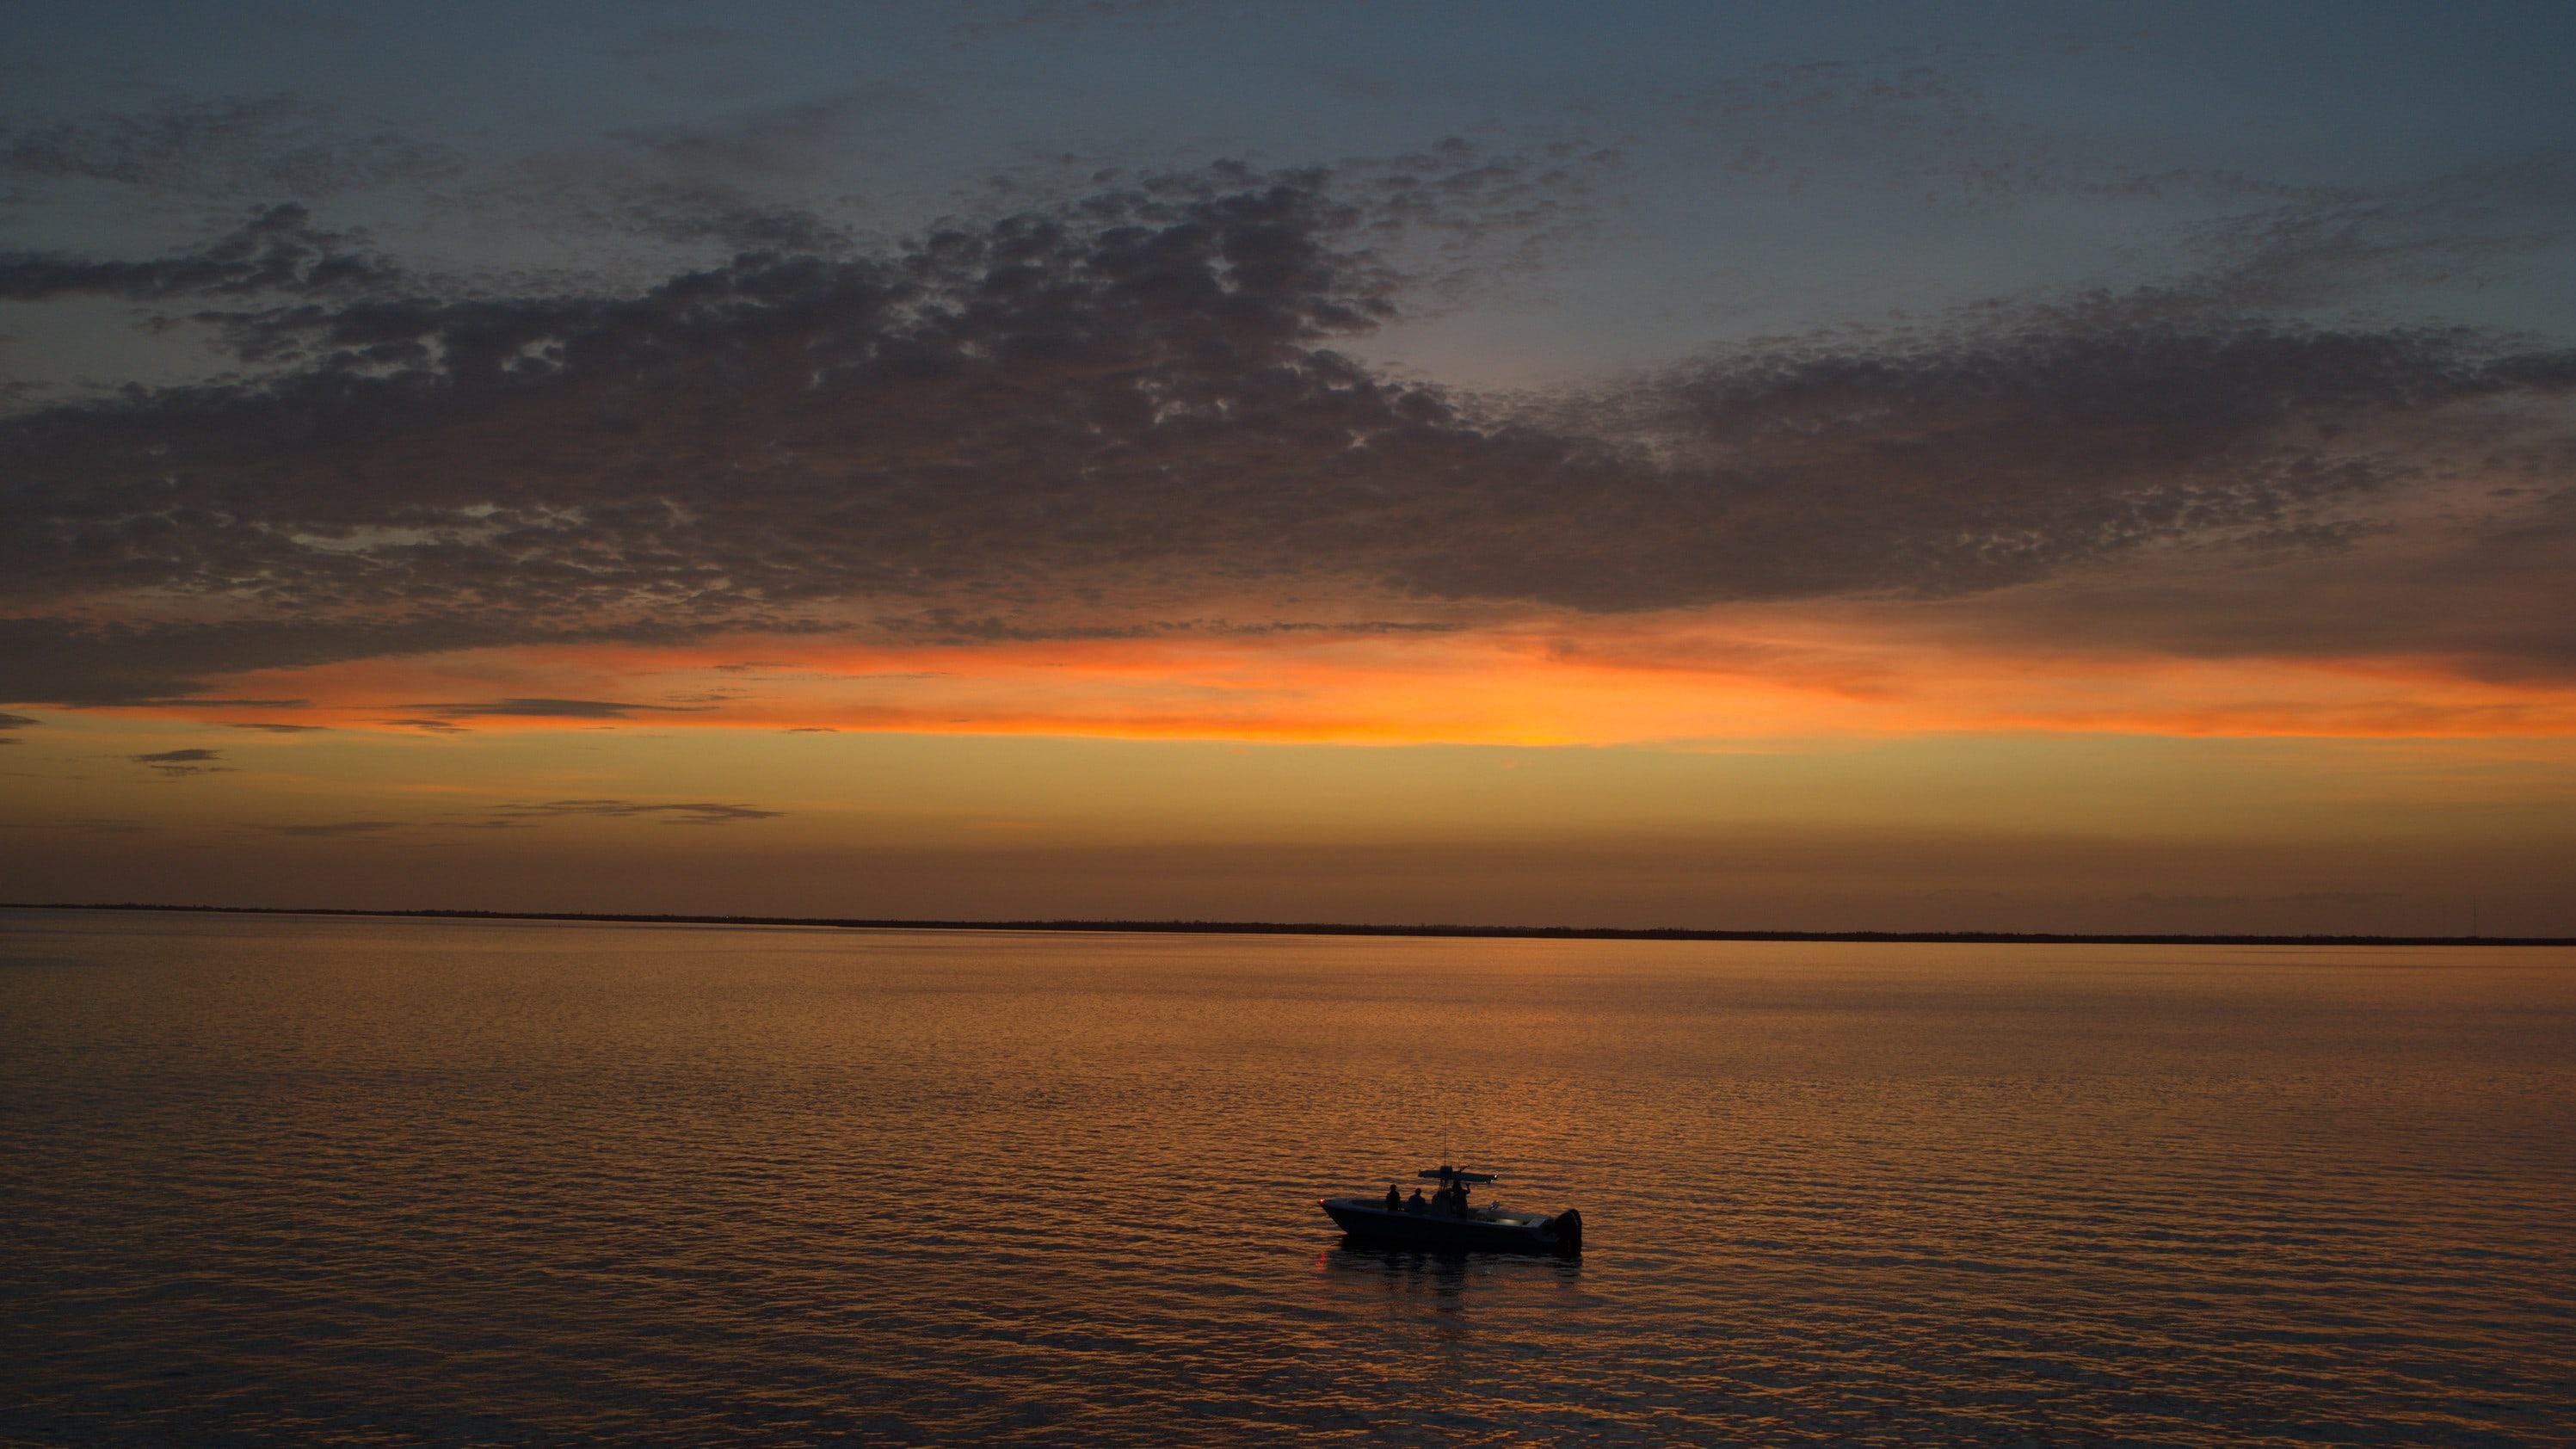 A boat out on the ocean side of the Florida Keys, against an orange sunset. (National Geographic for Disney+)